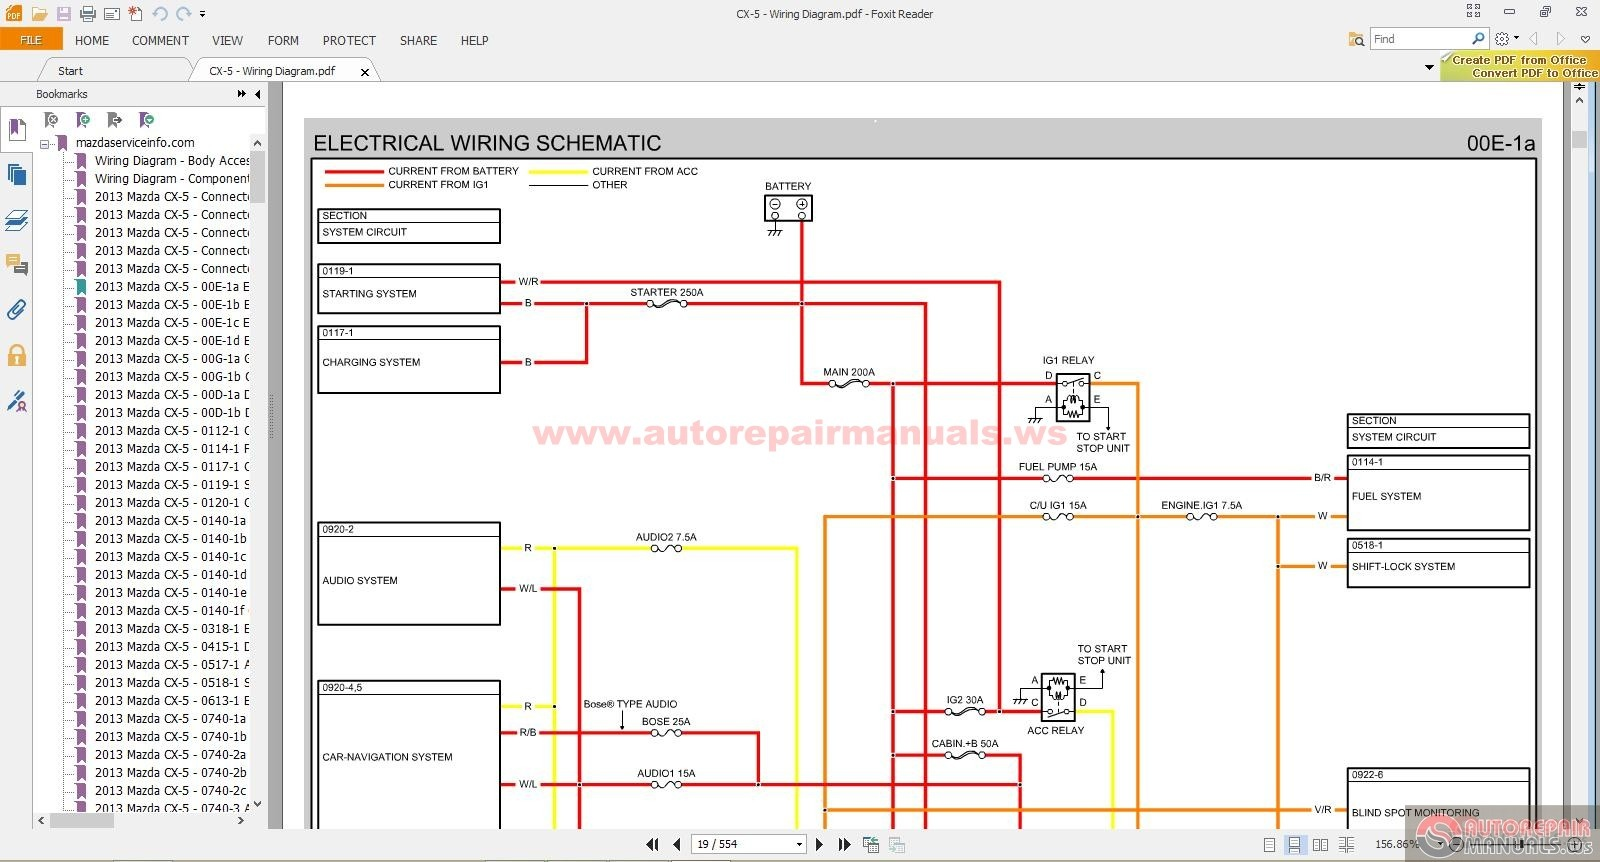 2014 international wiring diagram   33 wiring diagram